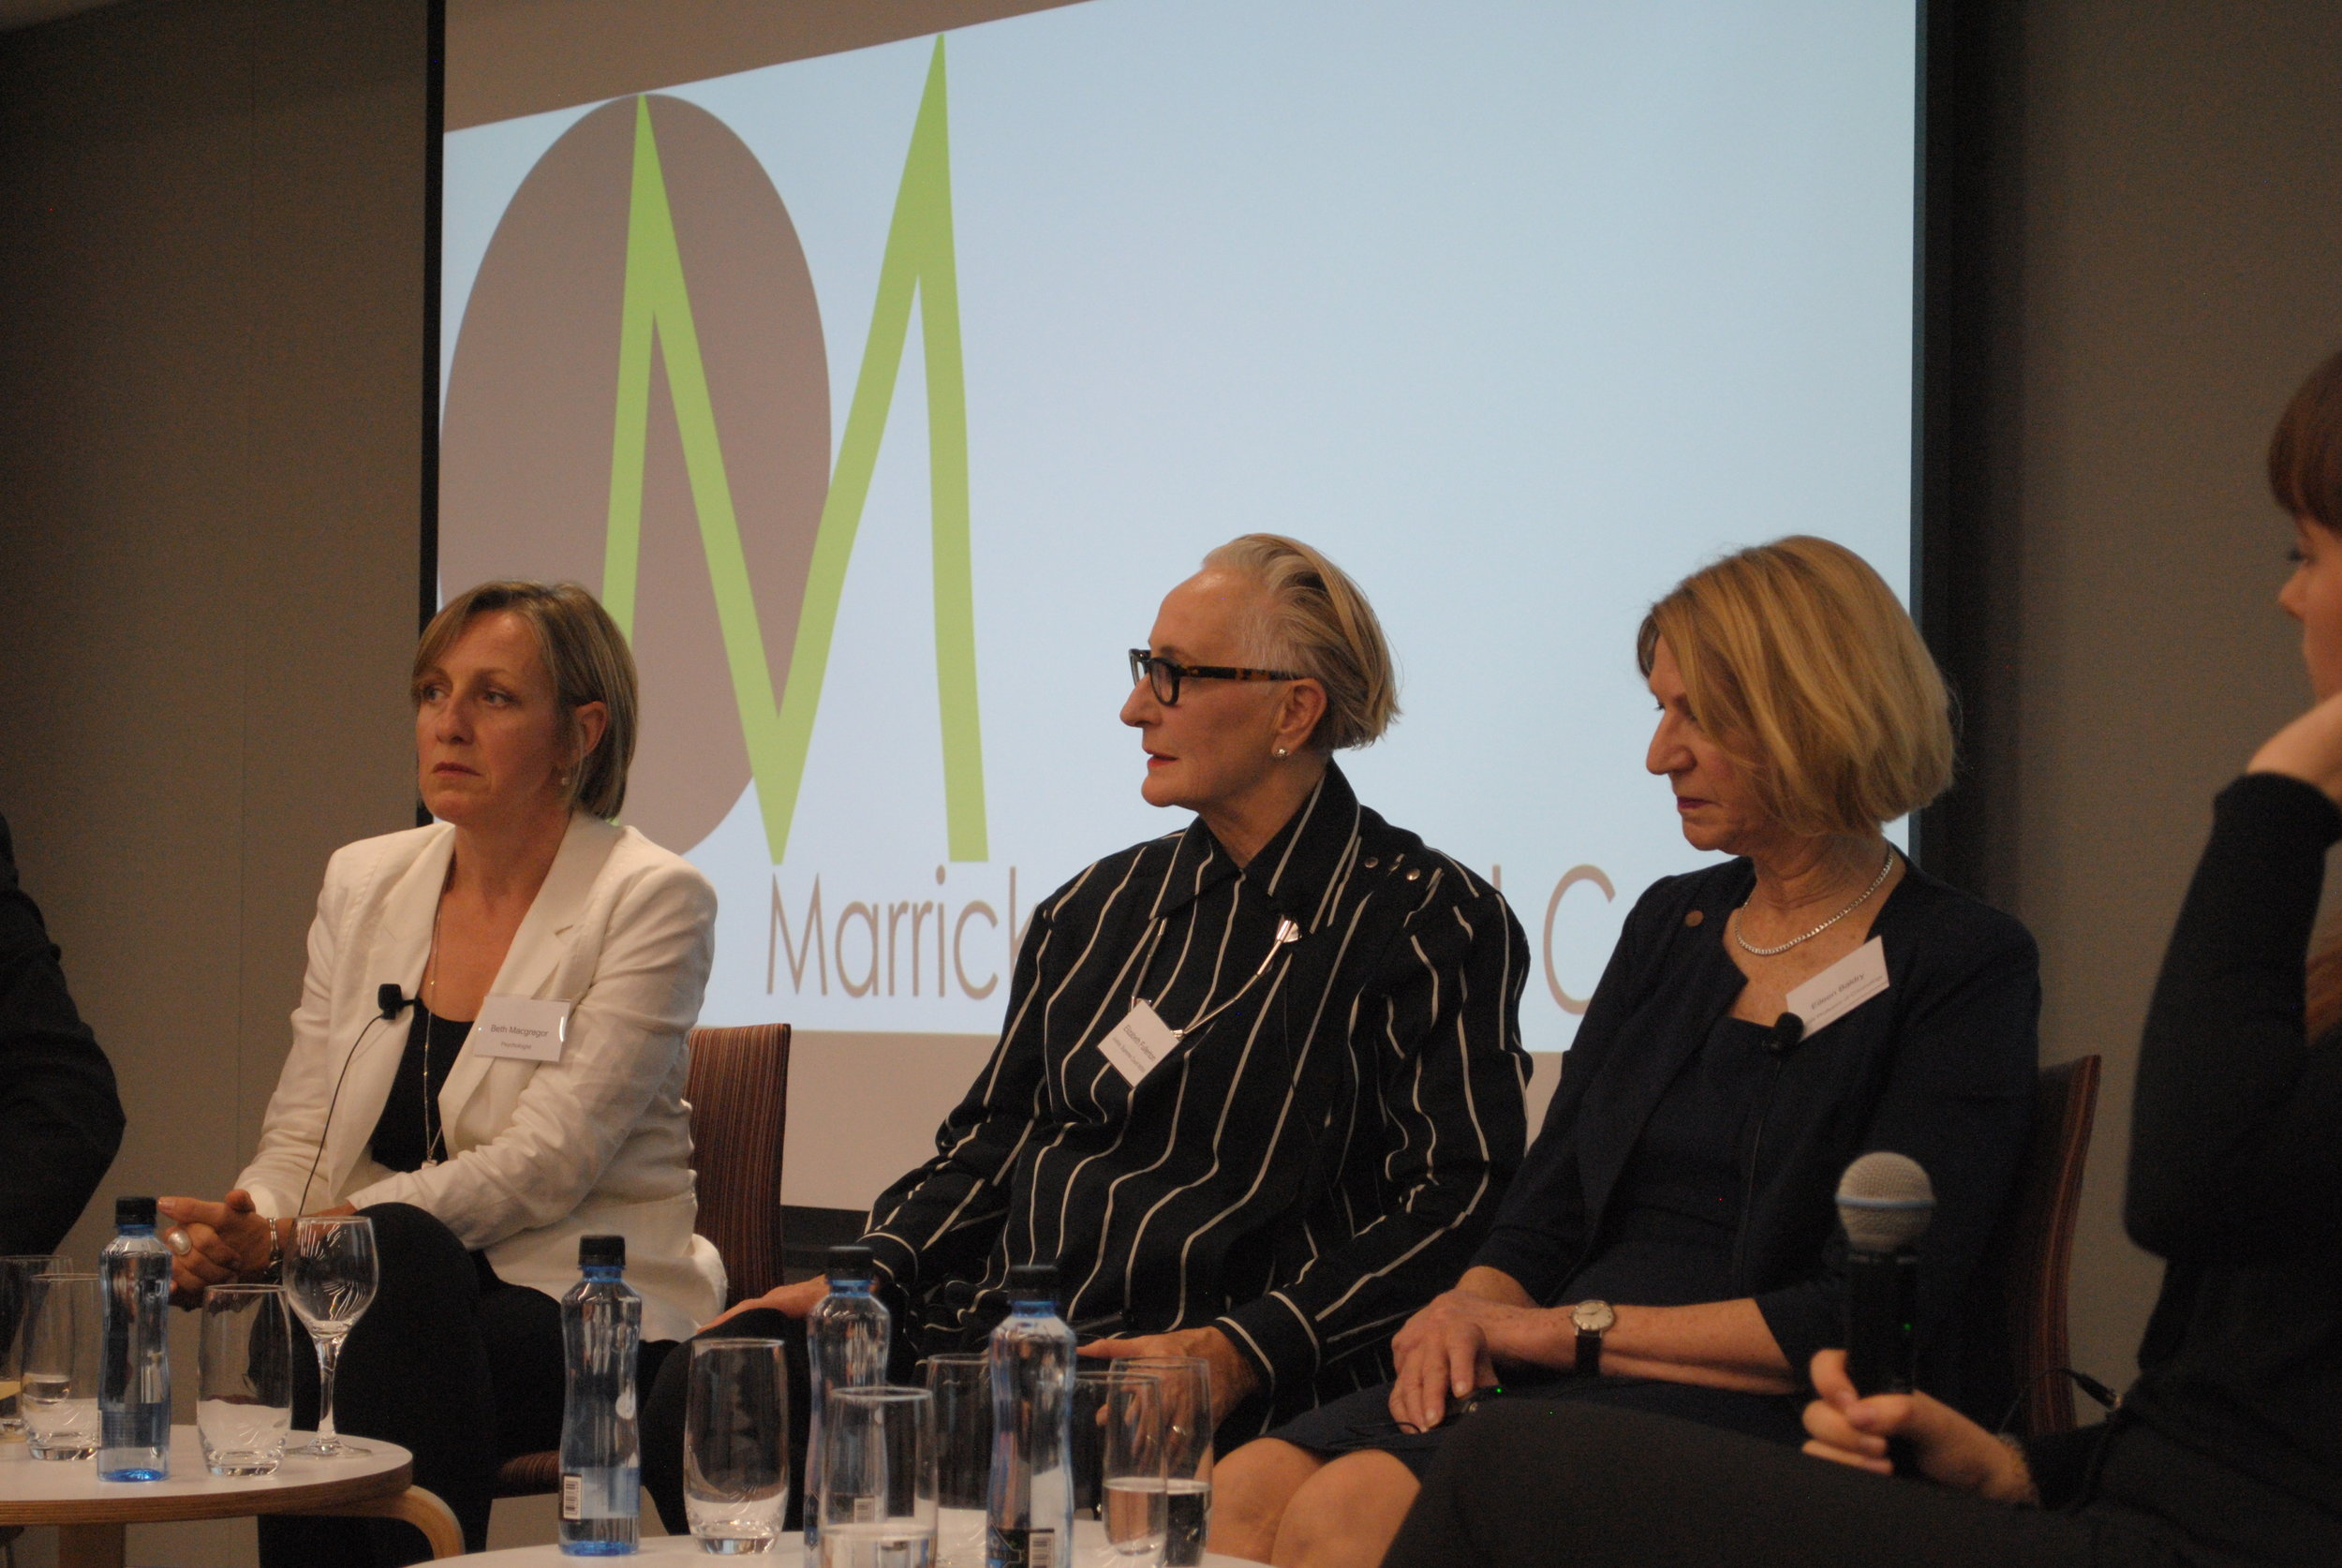 Stopping the cycle of violence (l-r): Beth Macgregor, Justice Fullerton and Professor Eileen Baldry